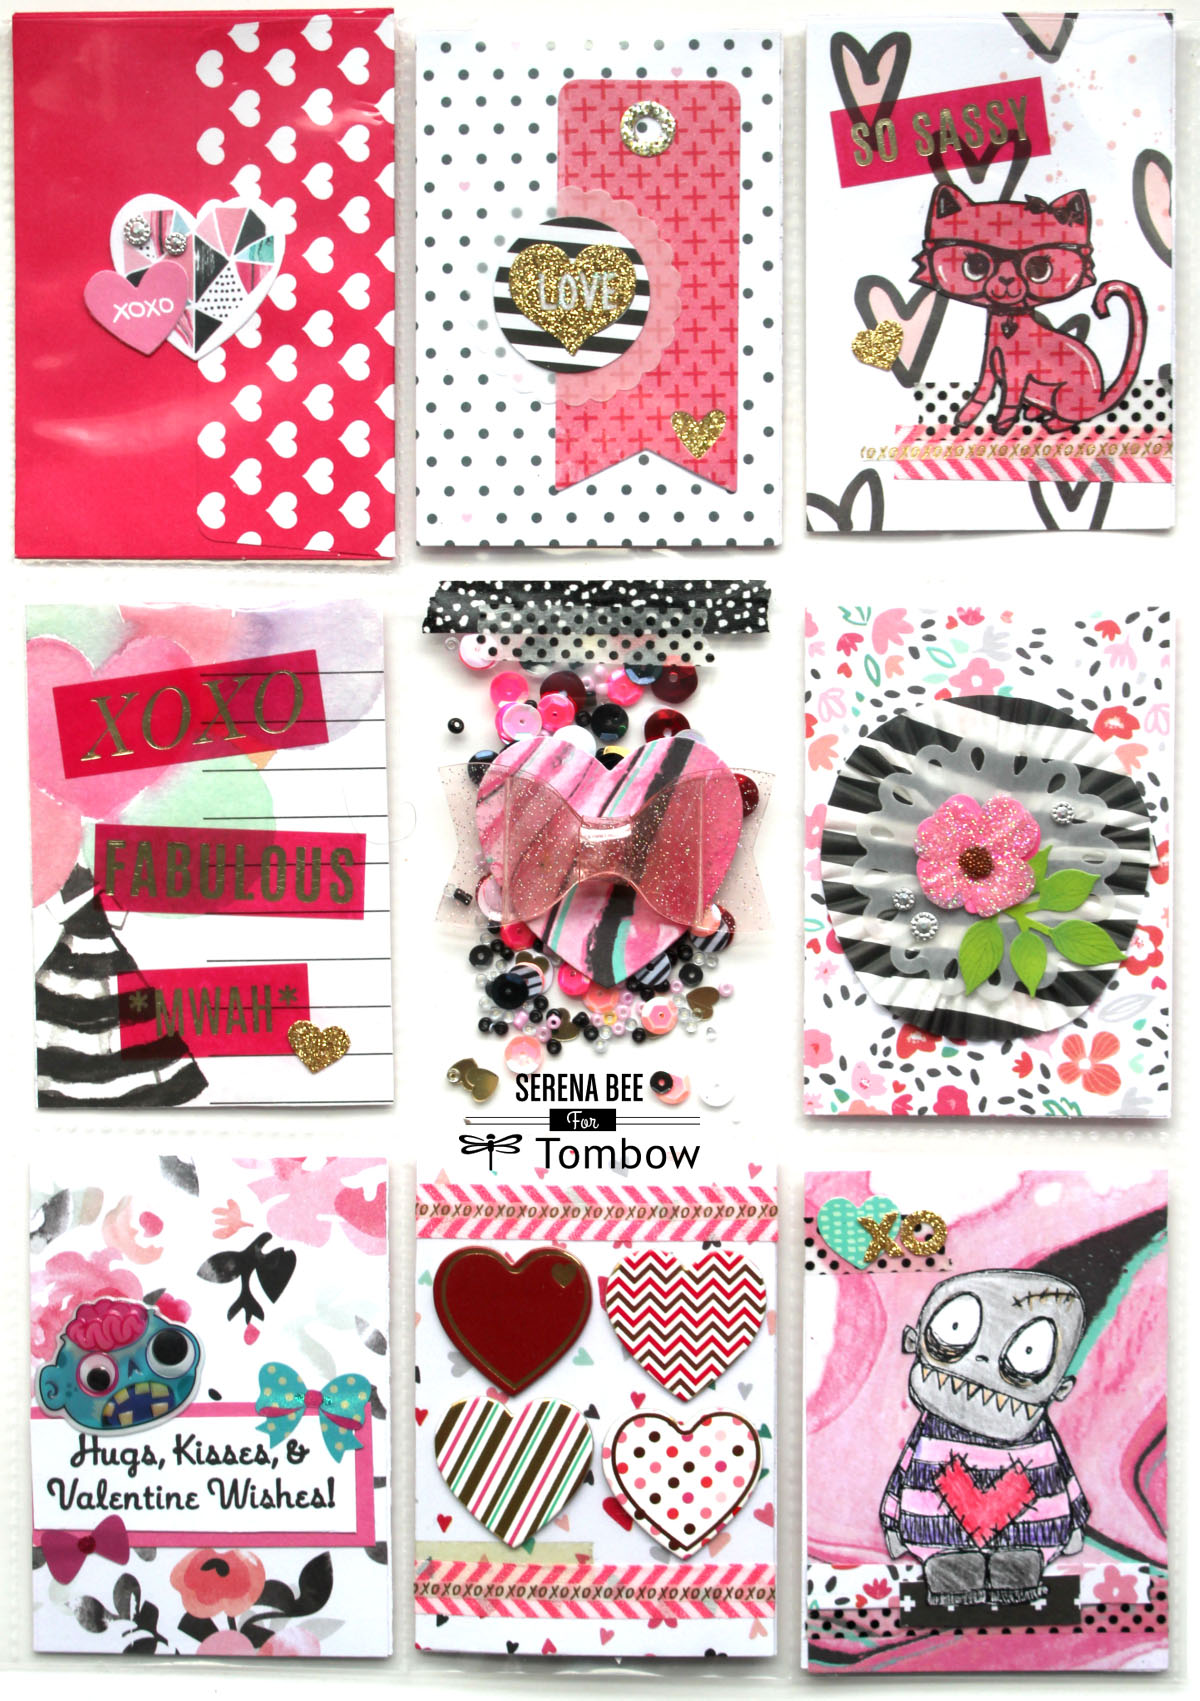 Valentines Day Pocket Letter Tutorial  Serena Bee  Tombow USA Blog